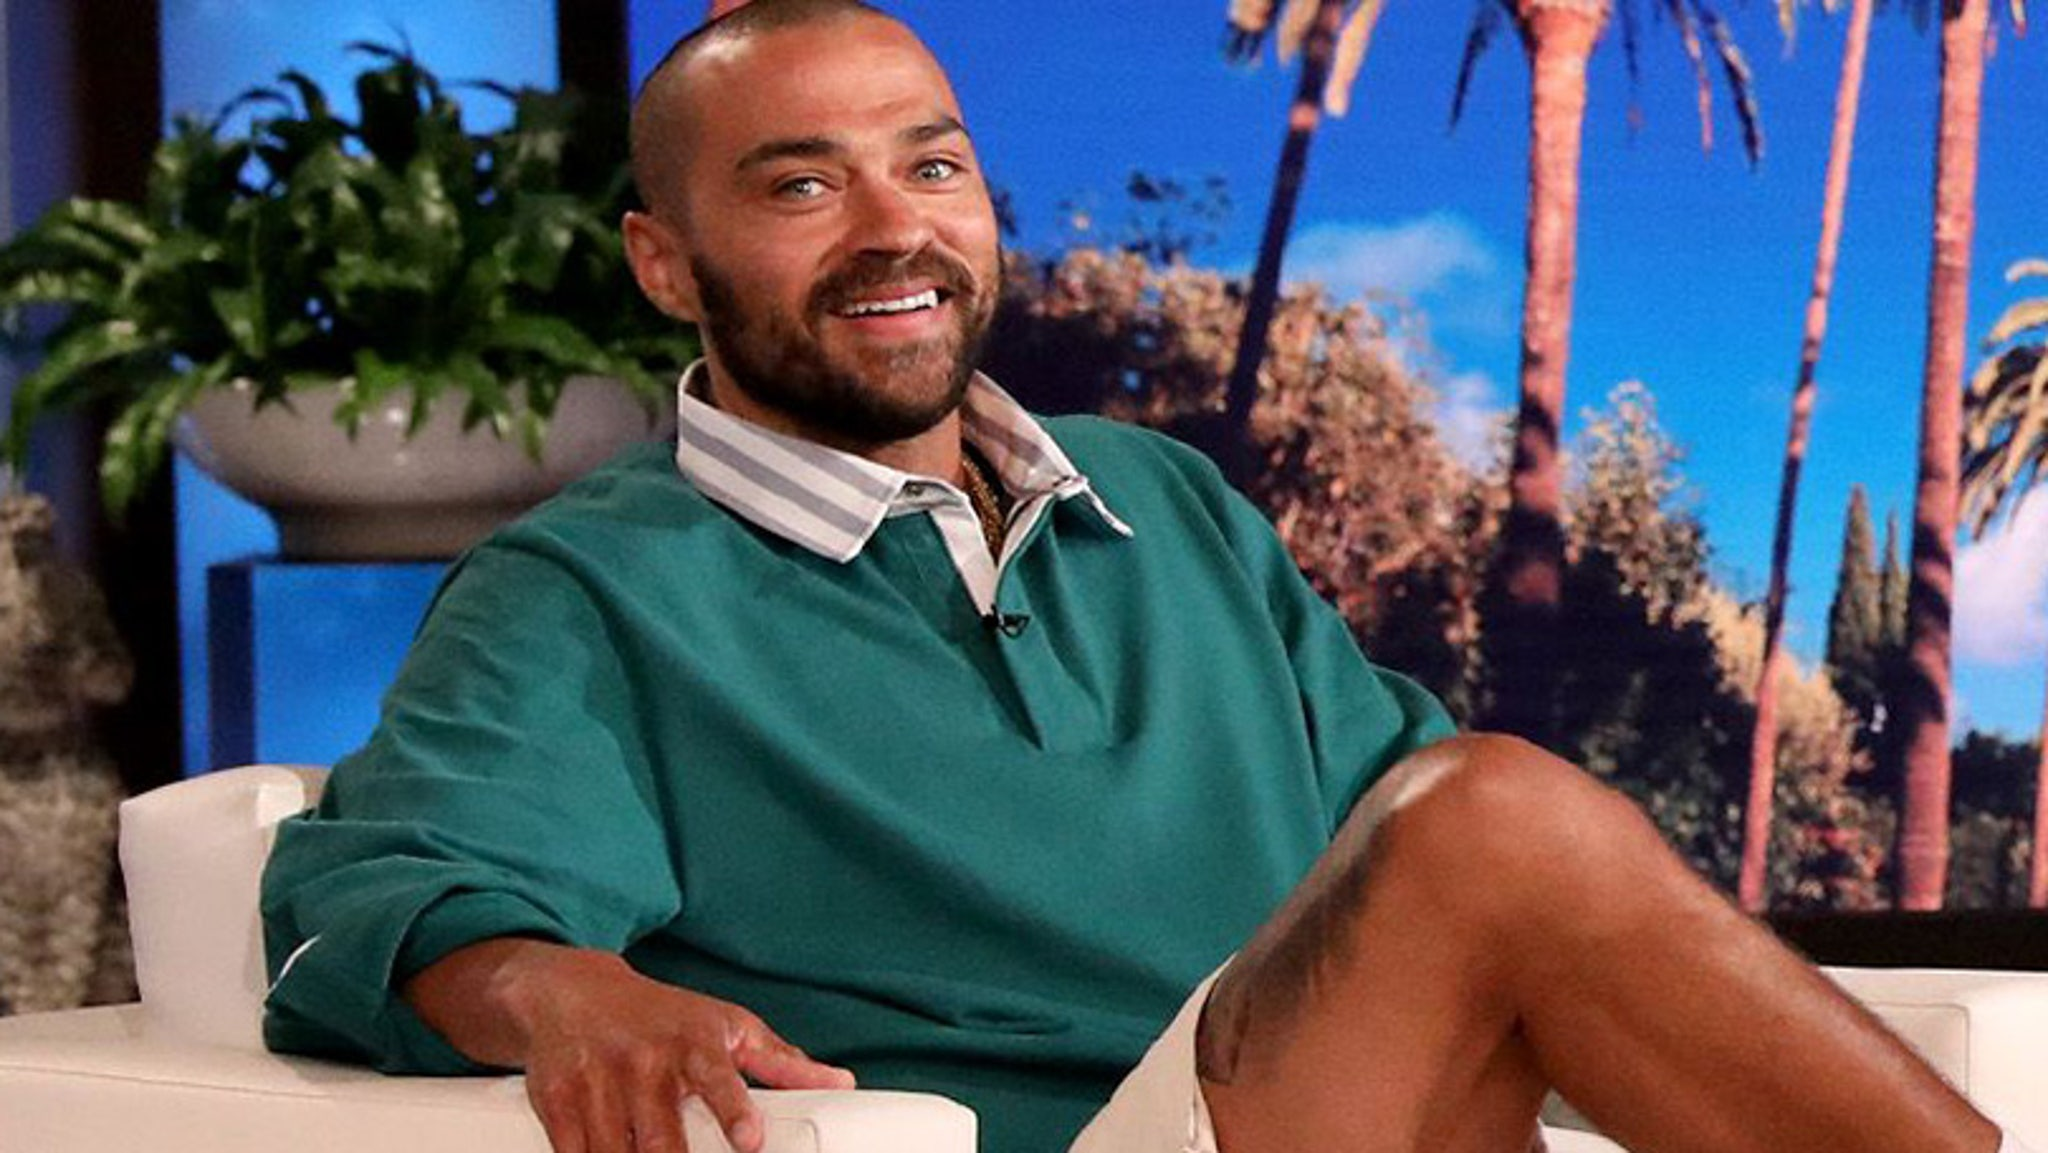 Jesse Williams on leaving Grey's Anatomy with Nude Broadway Debut